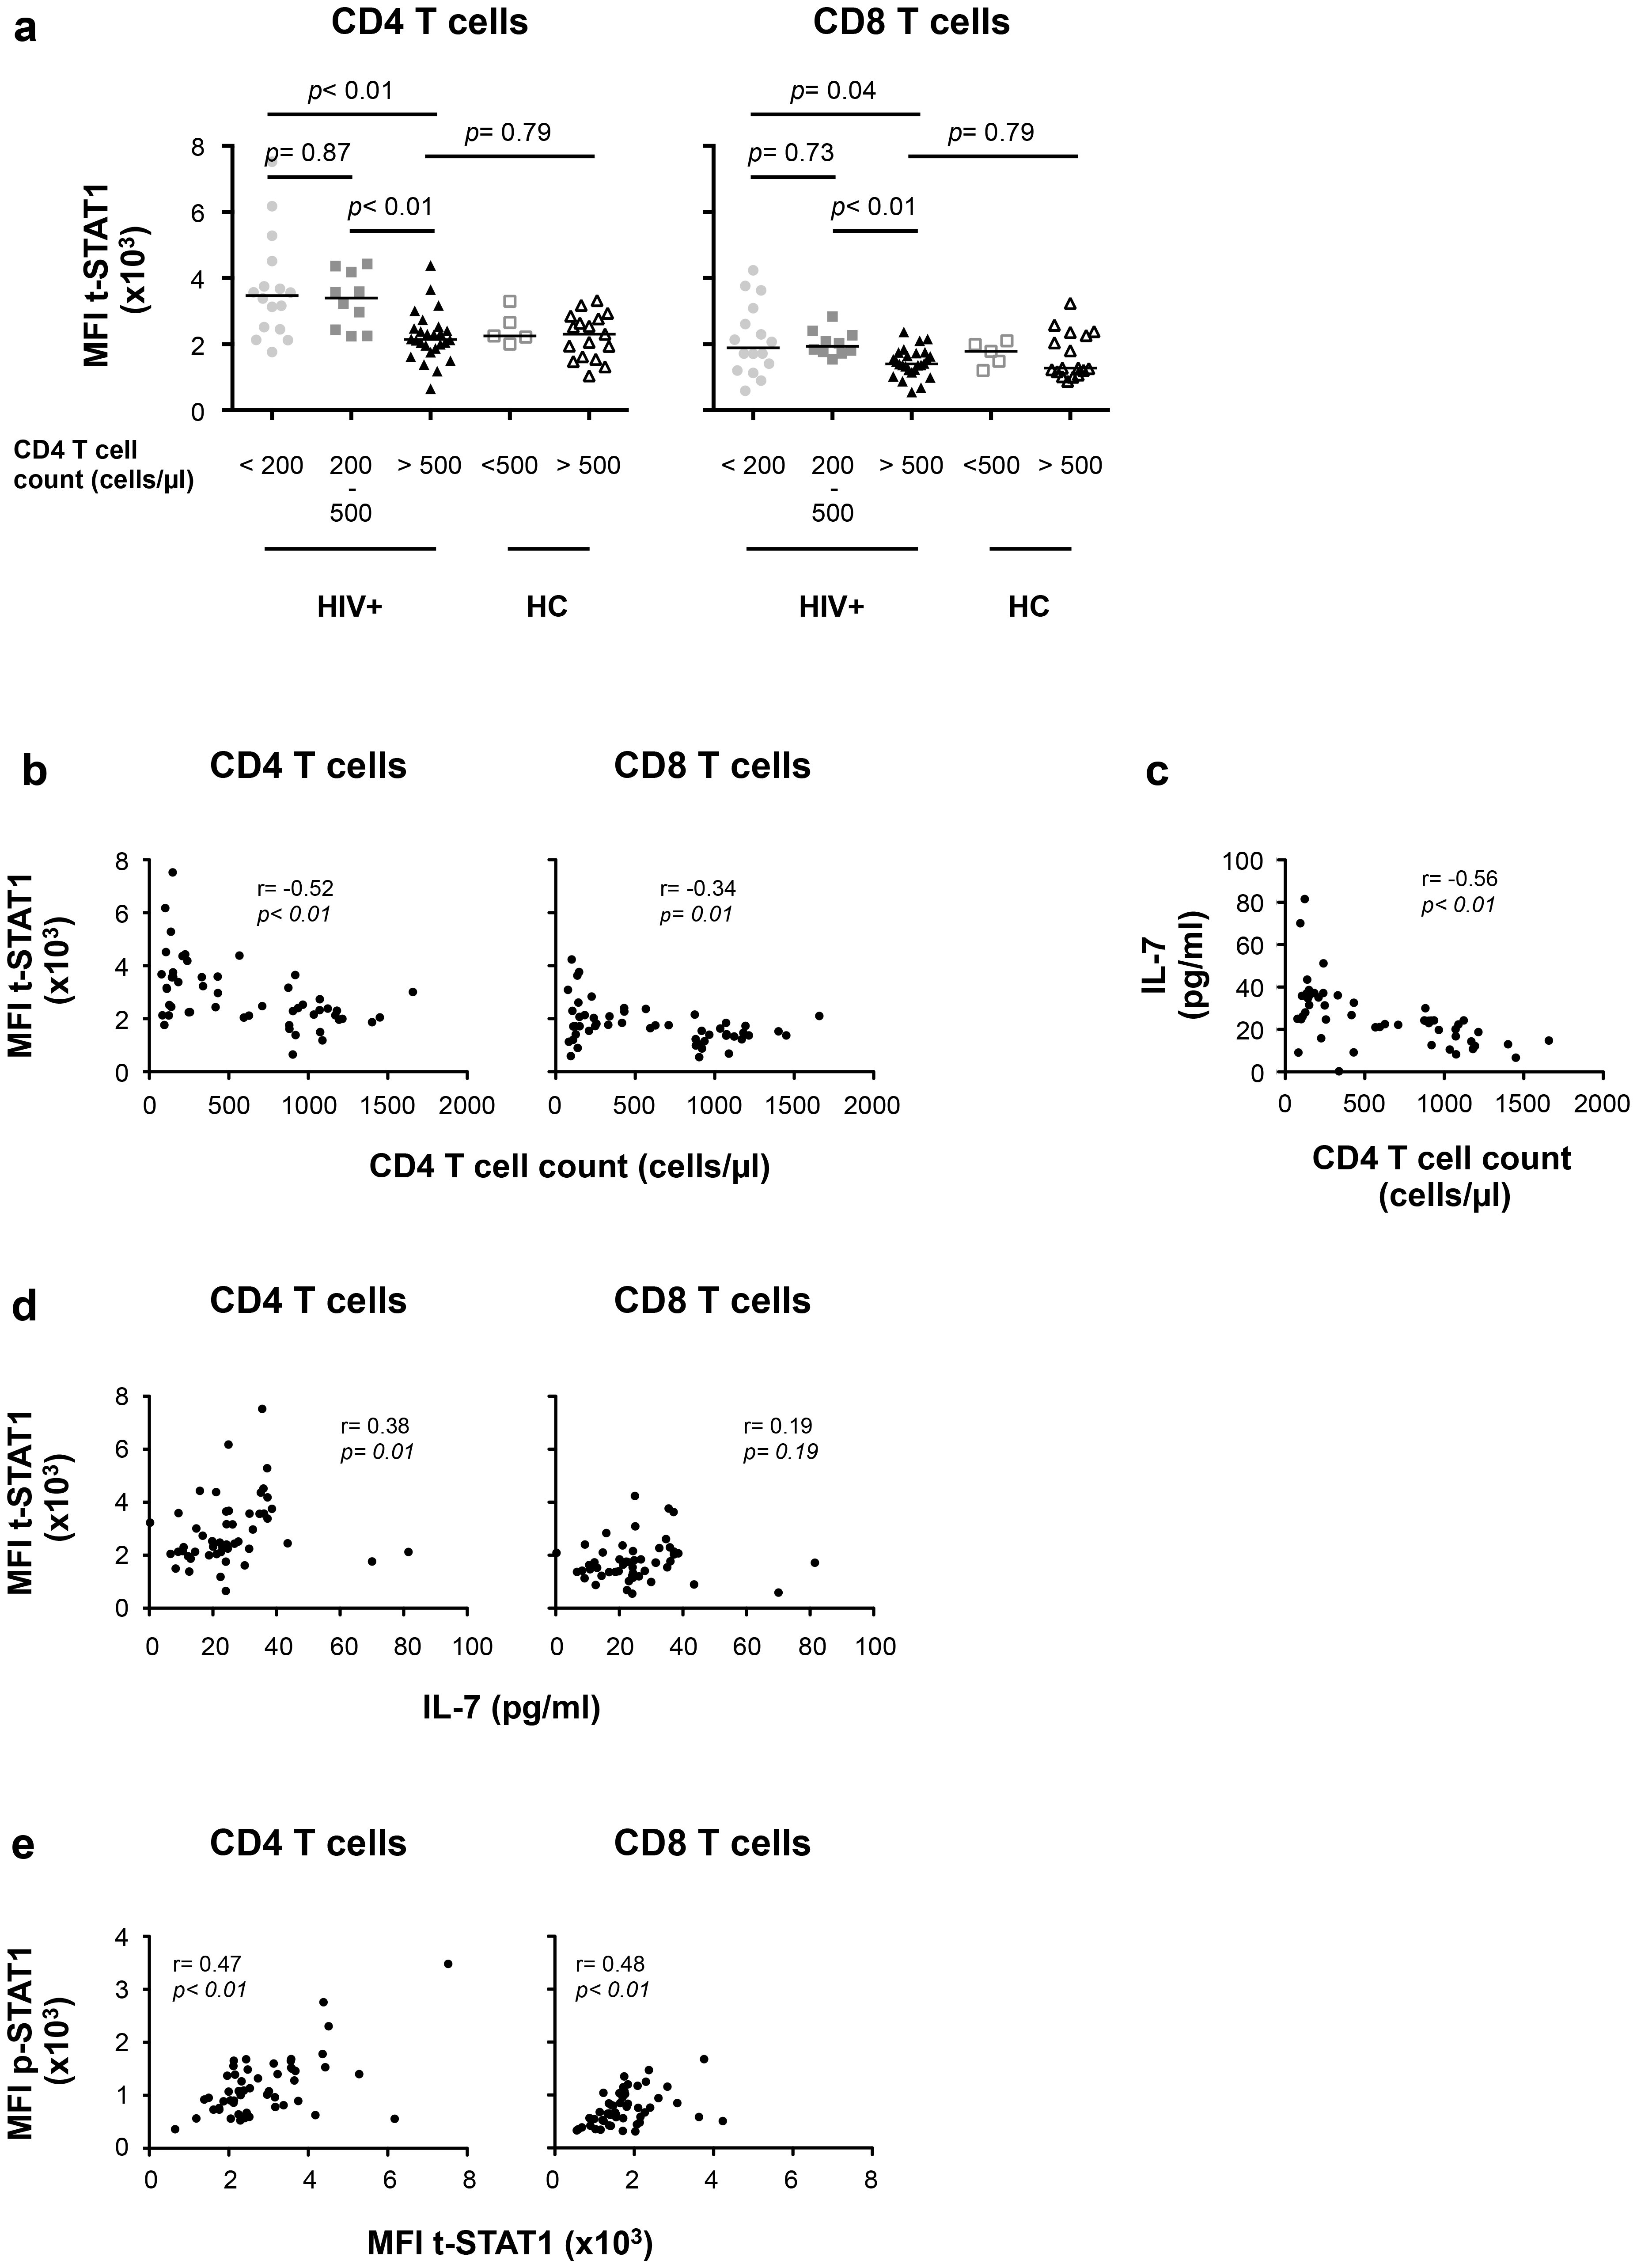 t-STAT1 expression is inversely associated with CD4 T cell counts and IL-7 serum levels in HIV-infected patients undergoing cART.